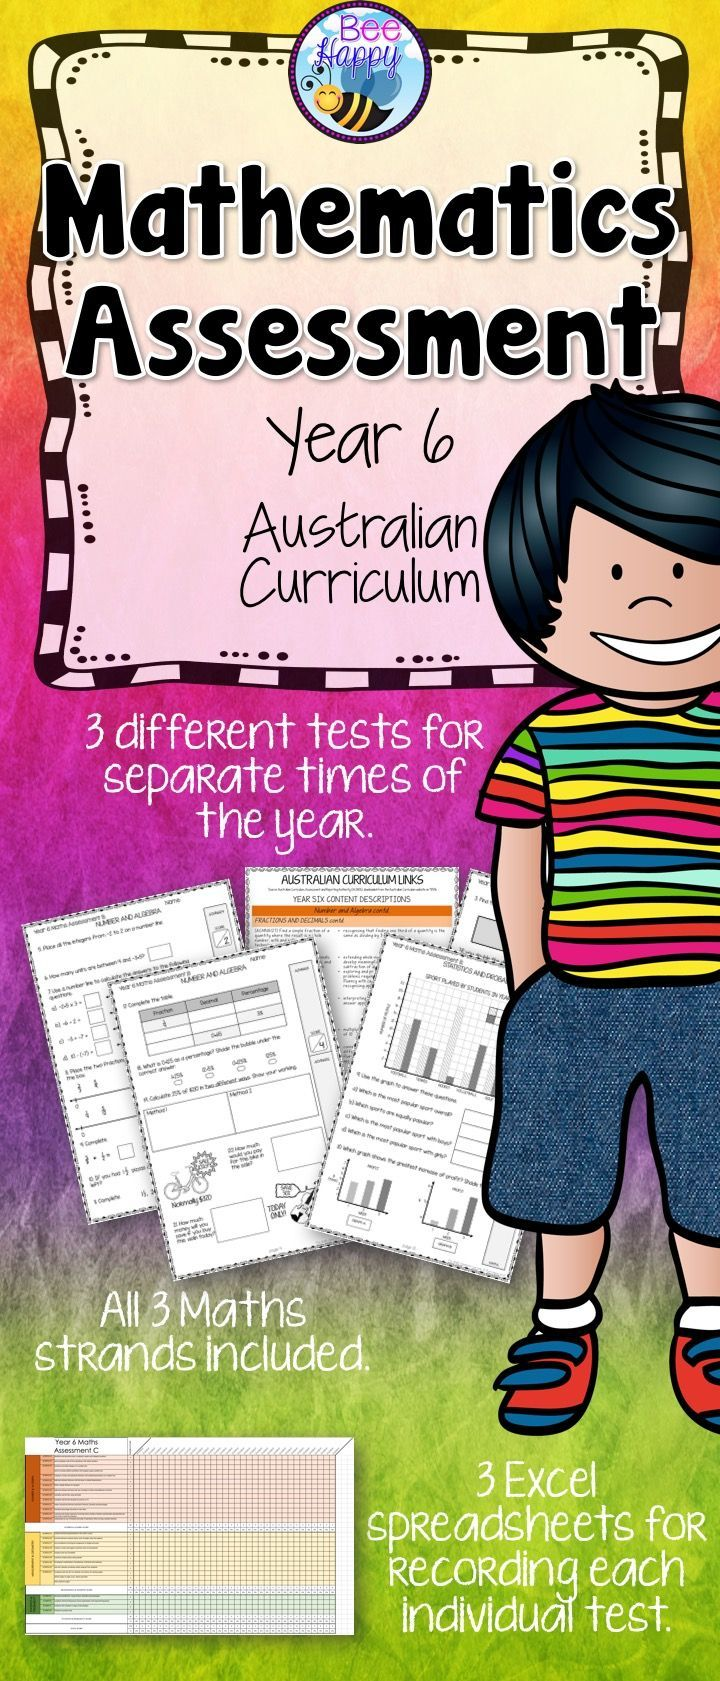 These Maths tests, for year six students, are linked to the Australian Curriculum. They cover Number & Algebra, Measurement & Geometry and Statistics & Probability. This package includes three assessments that will provide data that can be used to inform judgements of student achievement at certain times of the school year.